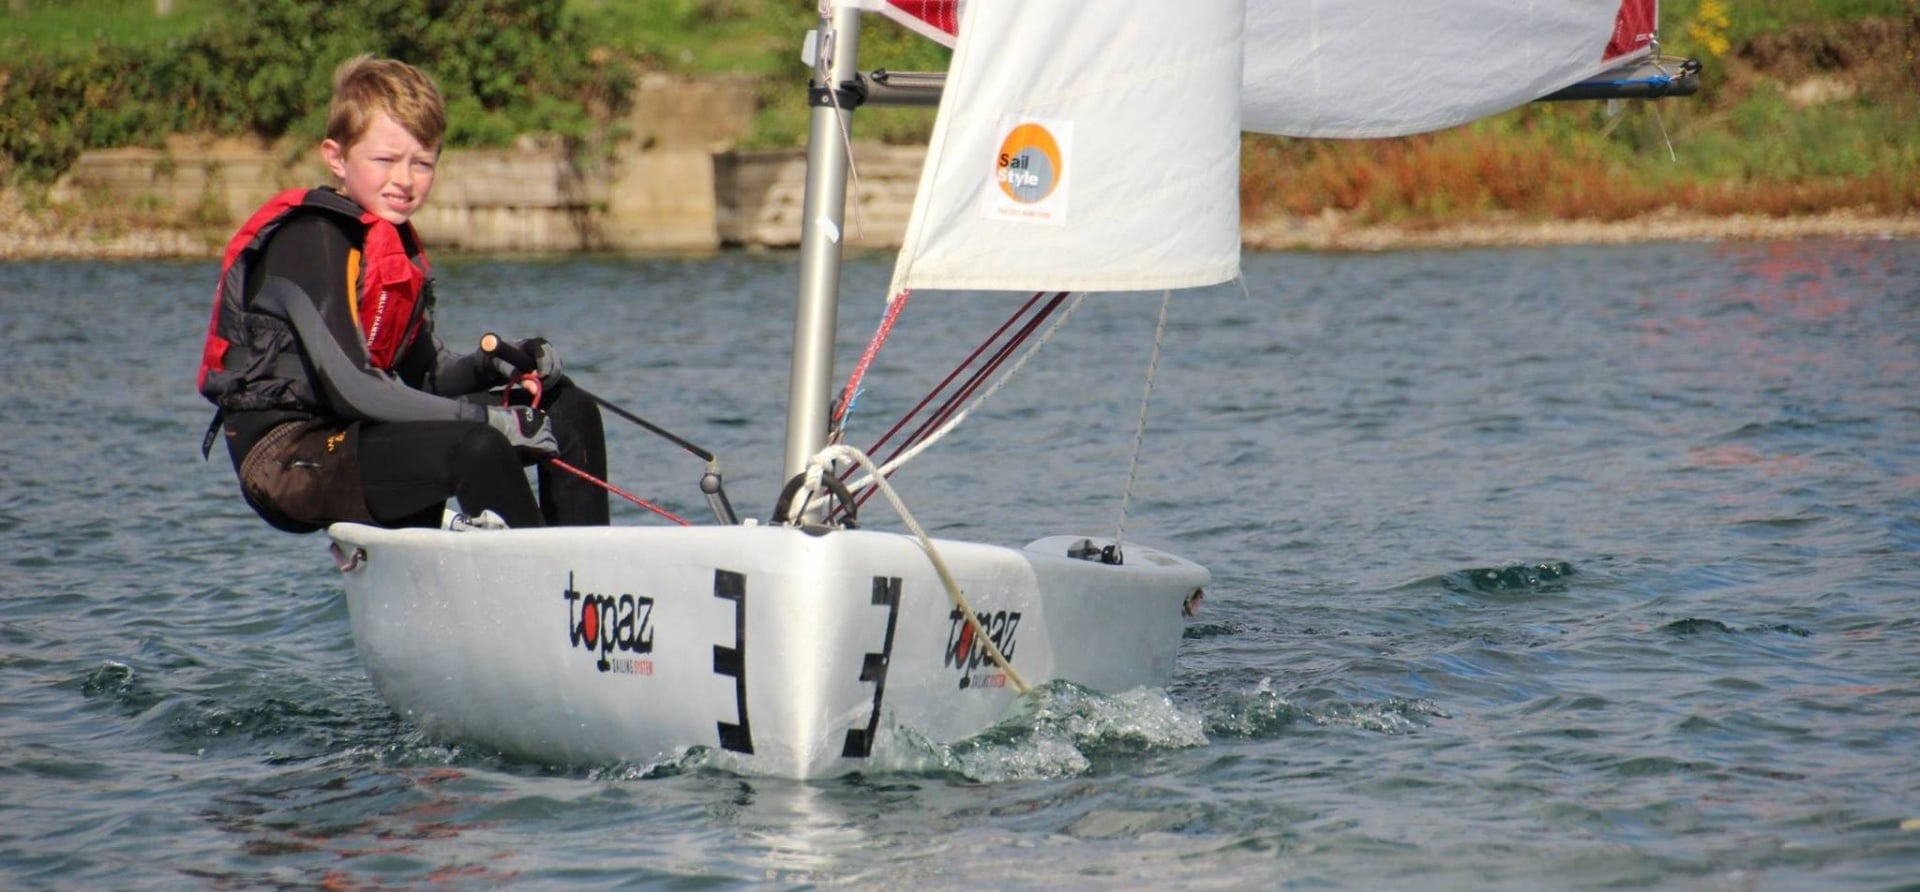 Dinghy Sailing Course - RYA L1 - Berkshire-4